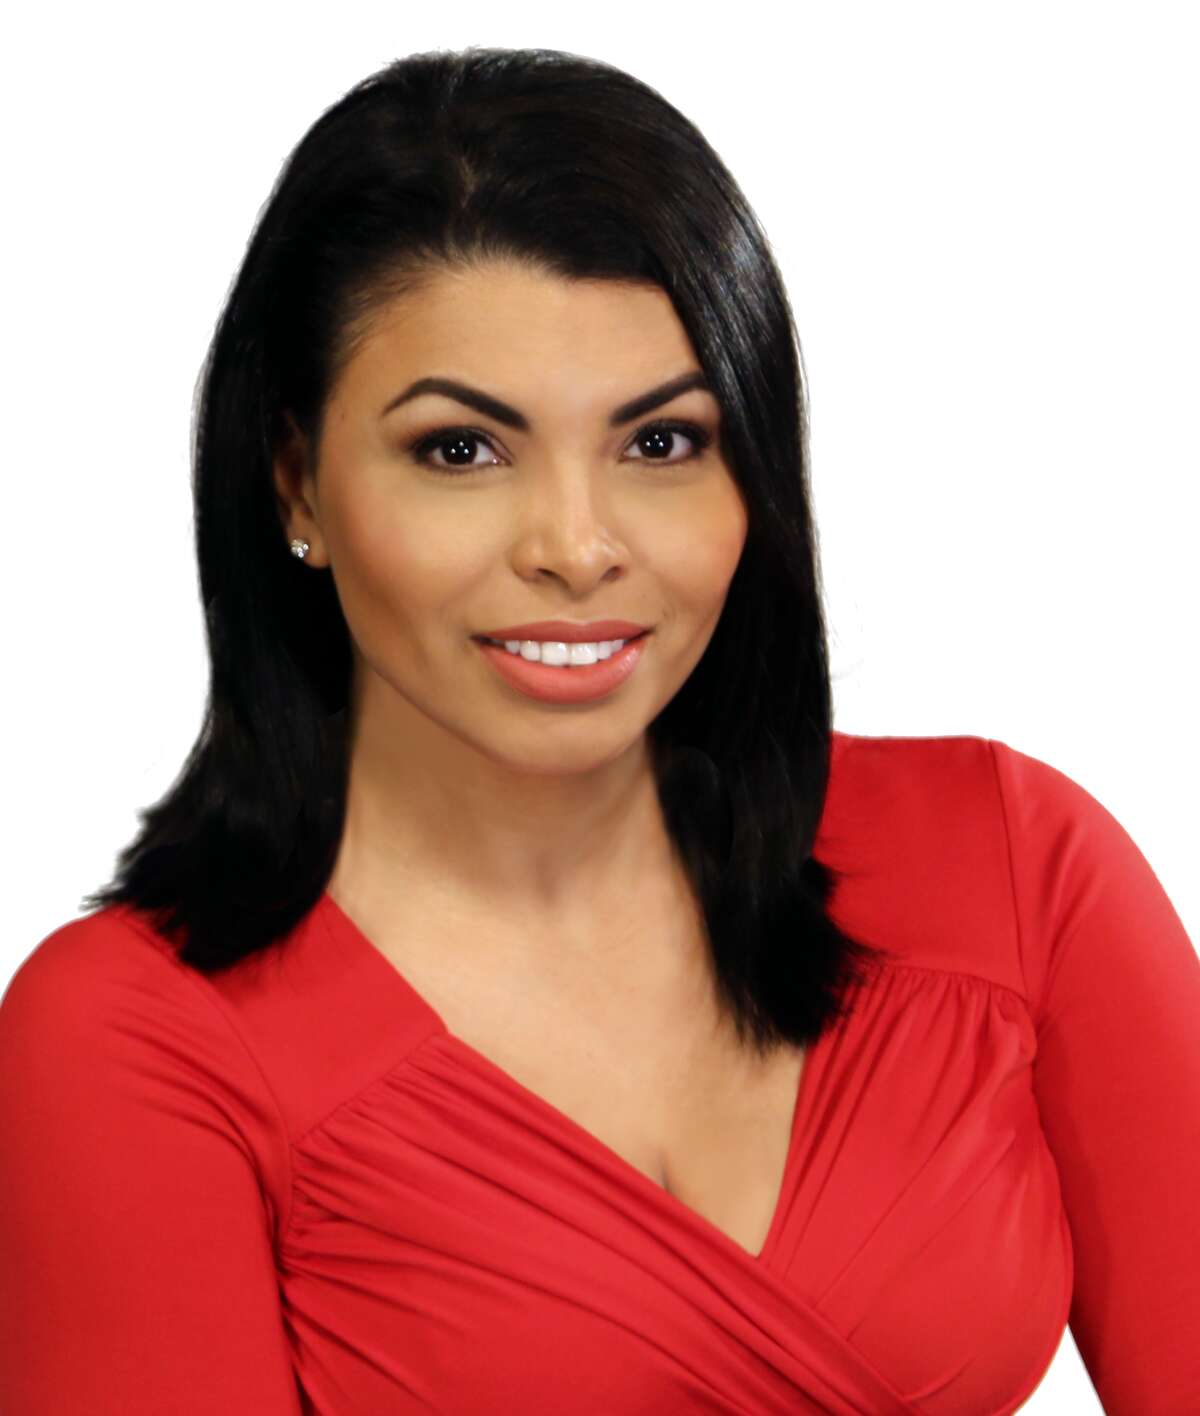 Natasha Geigel joined KRIV-TV in March 2016 as a general assignments reporter. Previously, Geigel was a general assignments reporter for New York City's News 12, a group of cable news channels in the New York City metropolitan area.